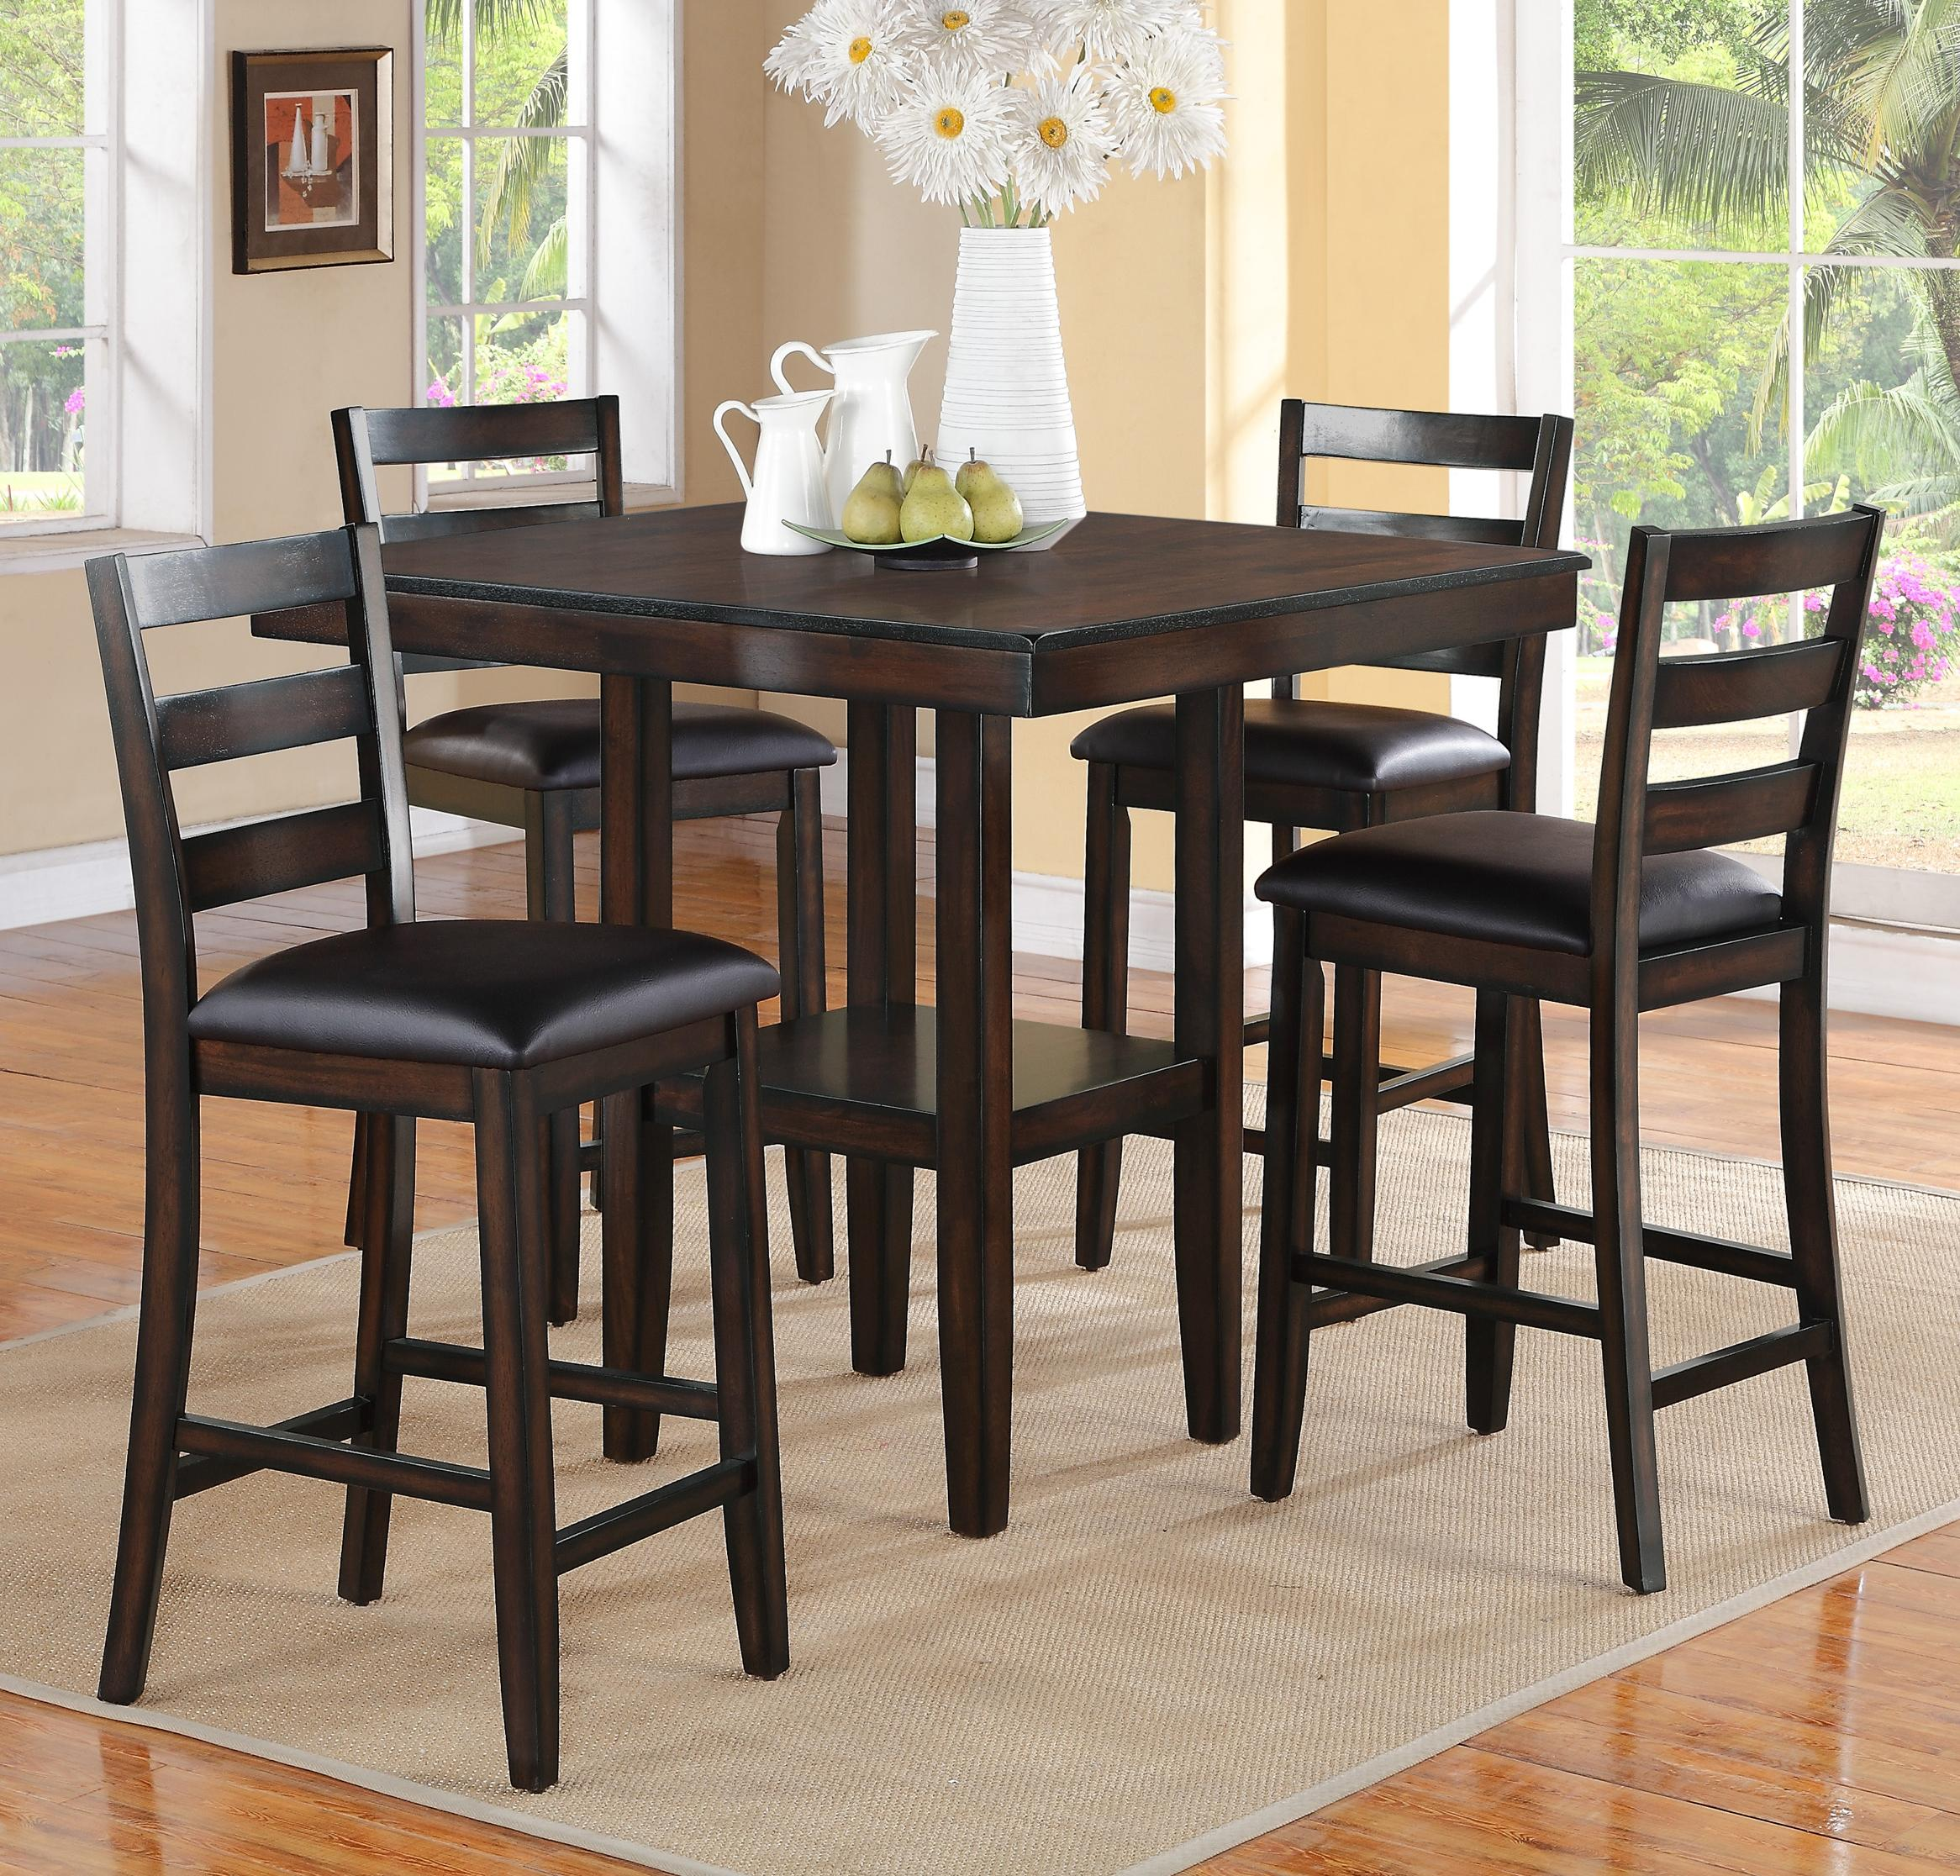 Dining Room Chair Sets Tahoe 5 Piece Counter Height Table And Chairs Set By Crown Mark At Wayside Furniture